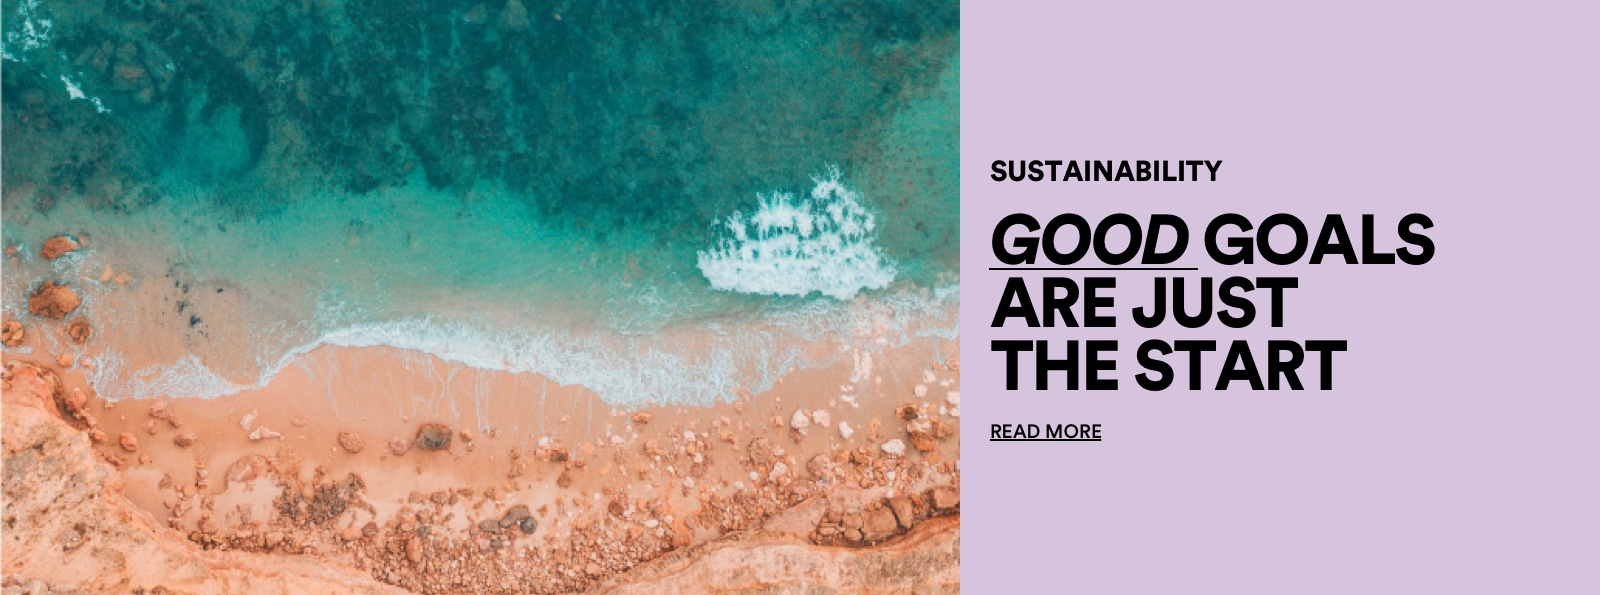 Sustainability. Good Goal Are Just the Start. Click to Read More.